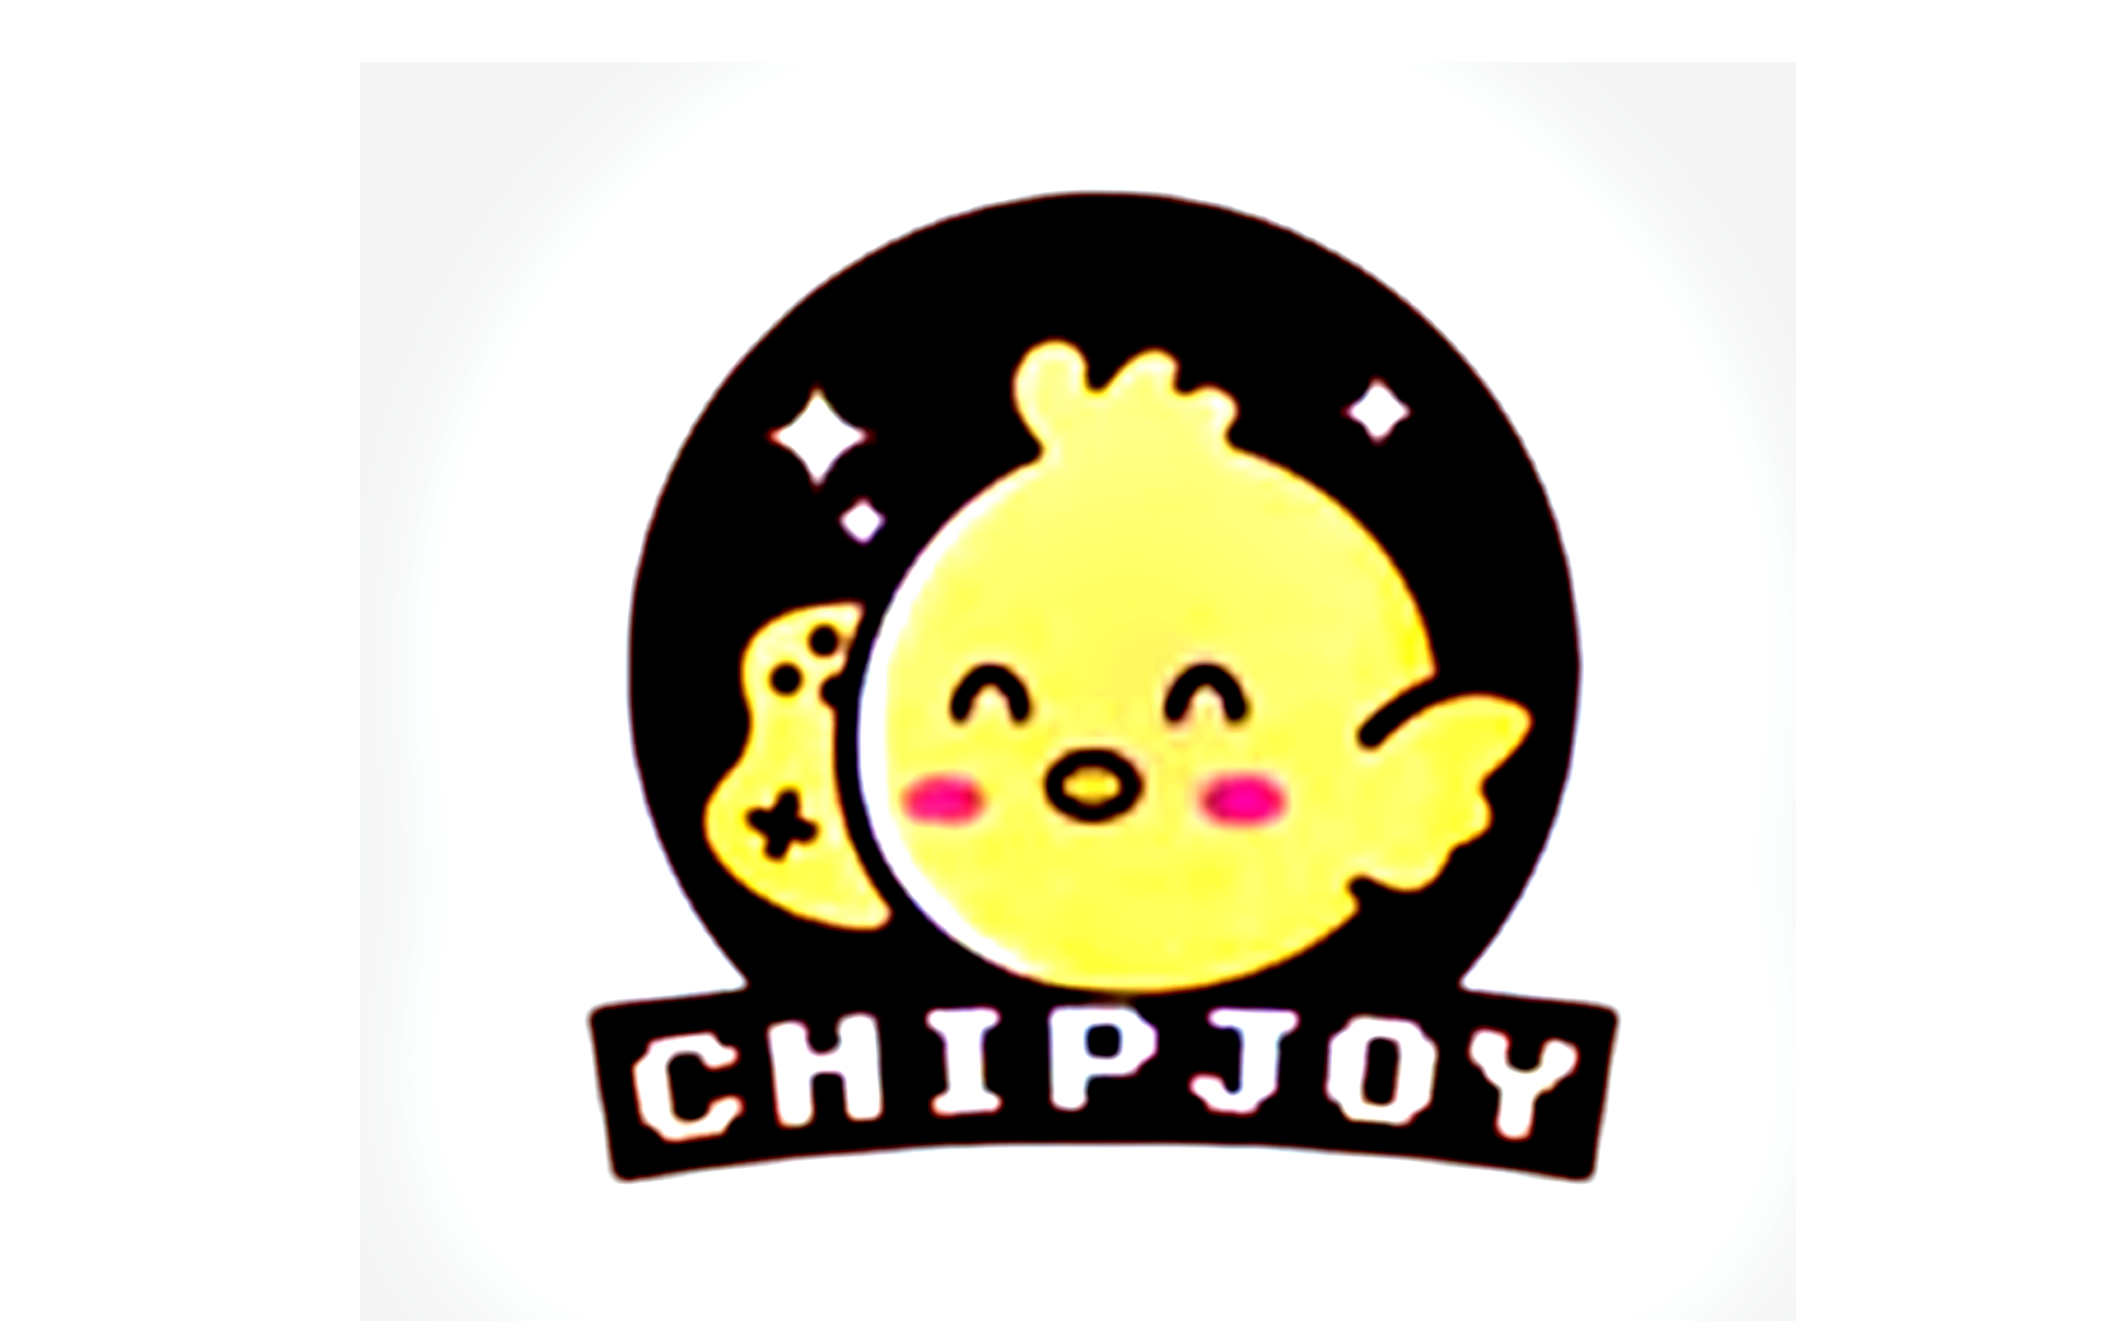 Chipjoy coupons